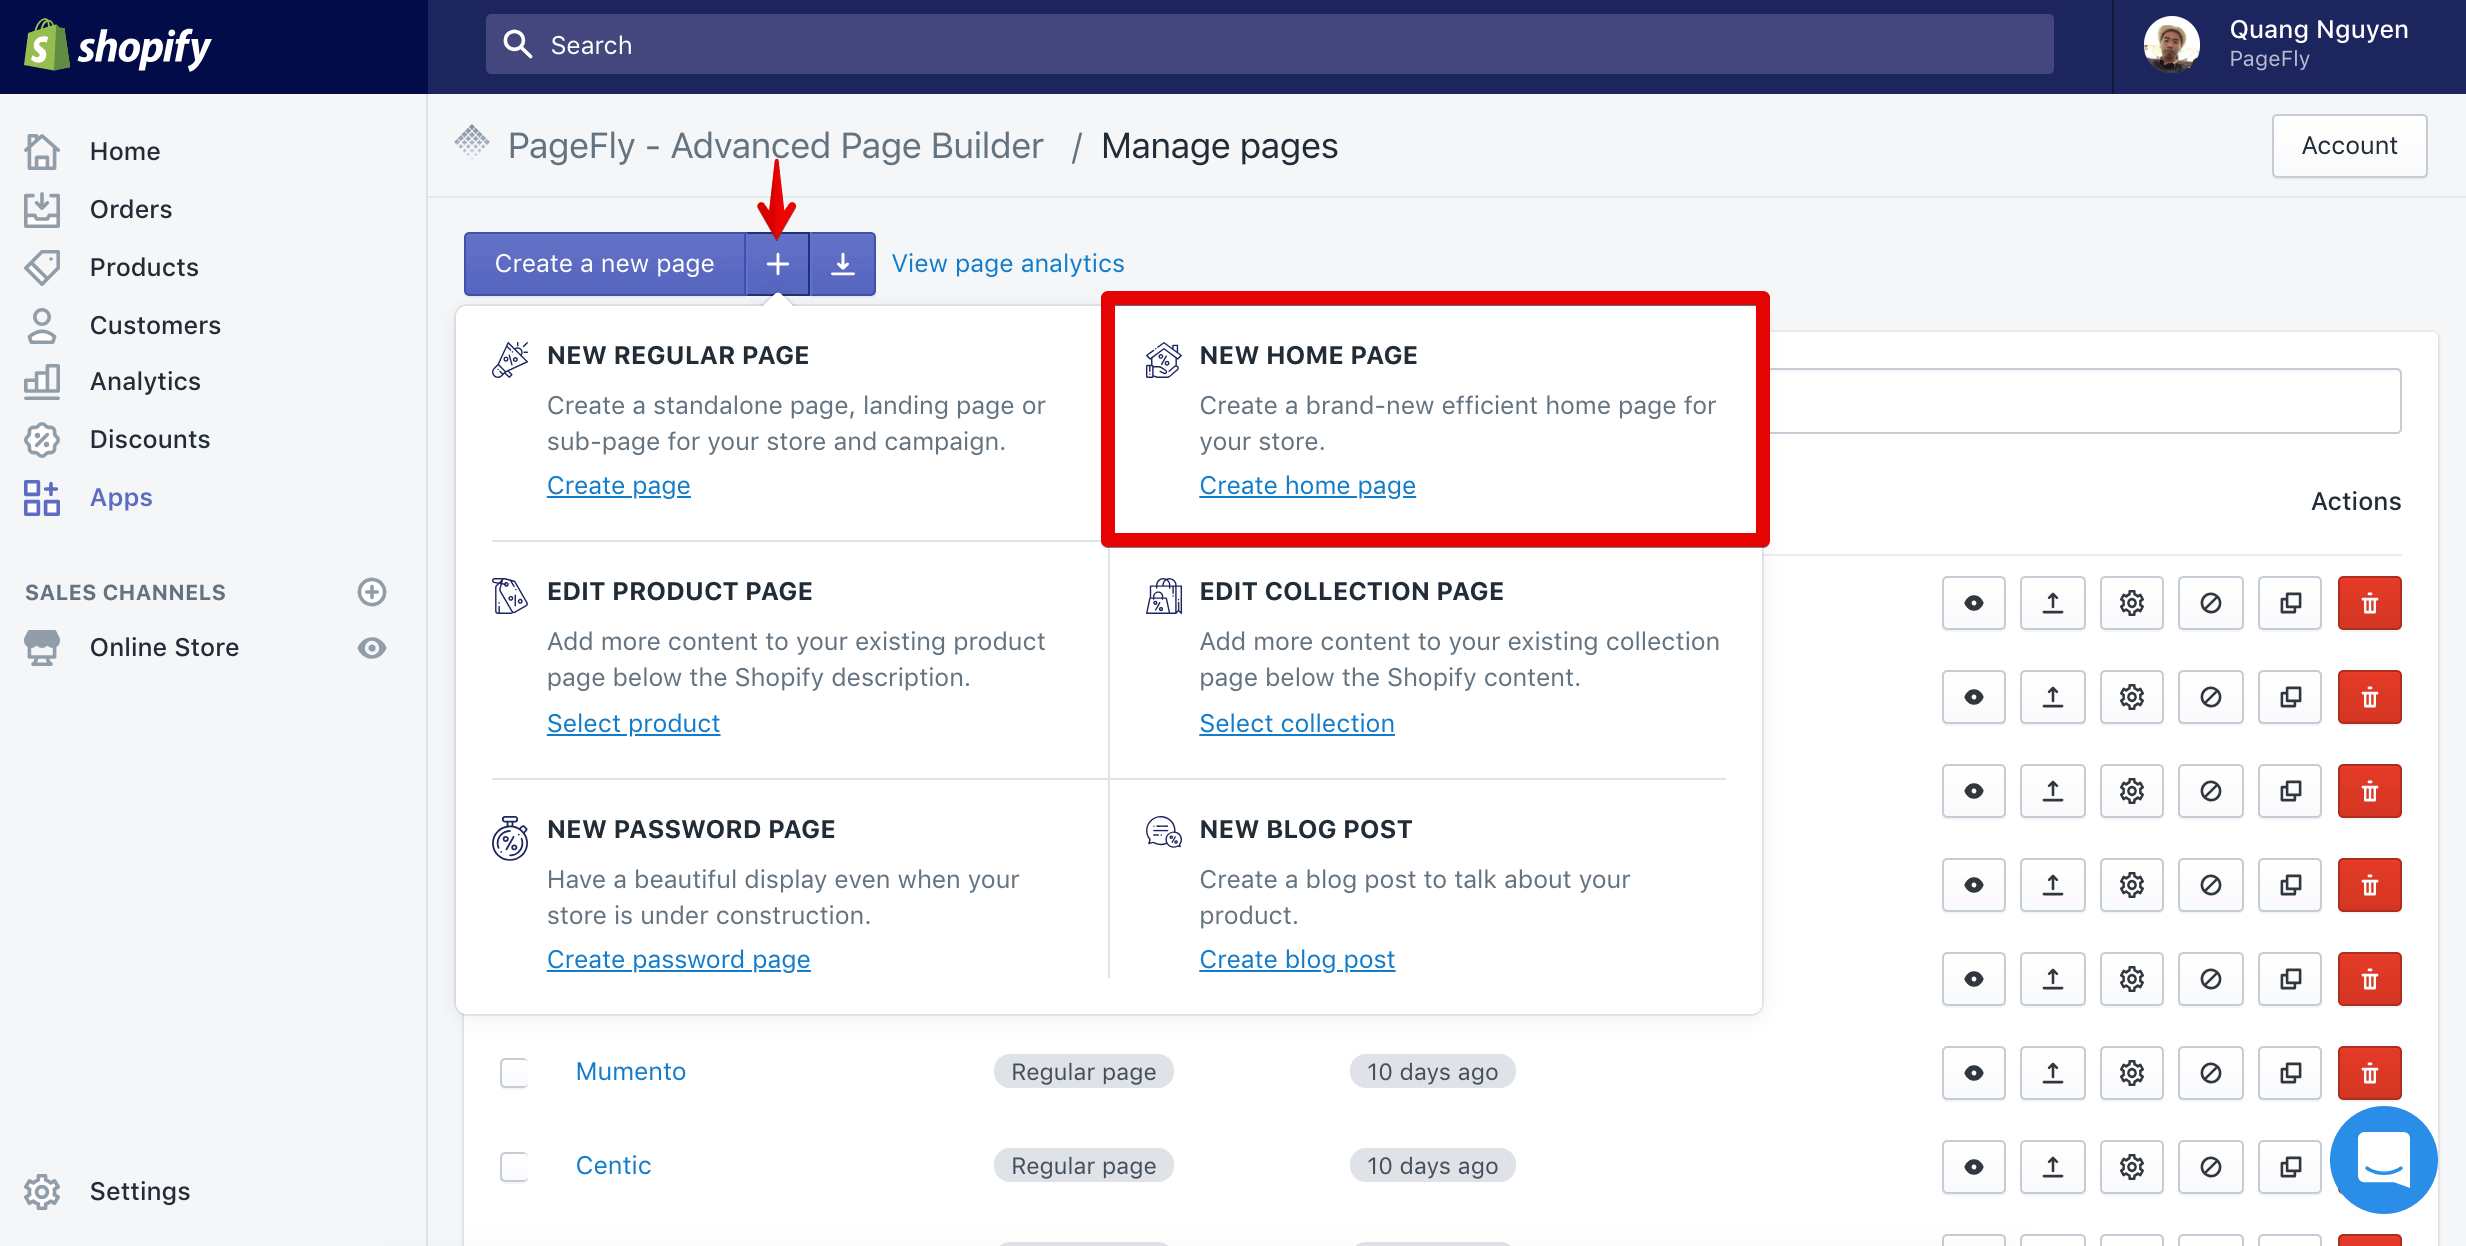 Create a new home page for your store in PageFly